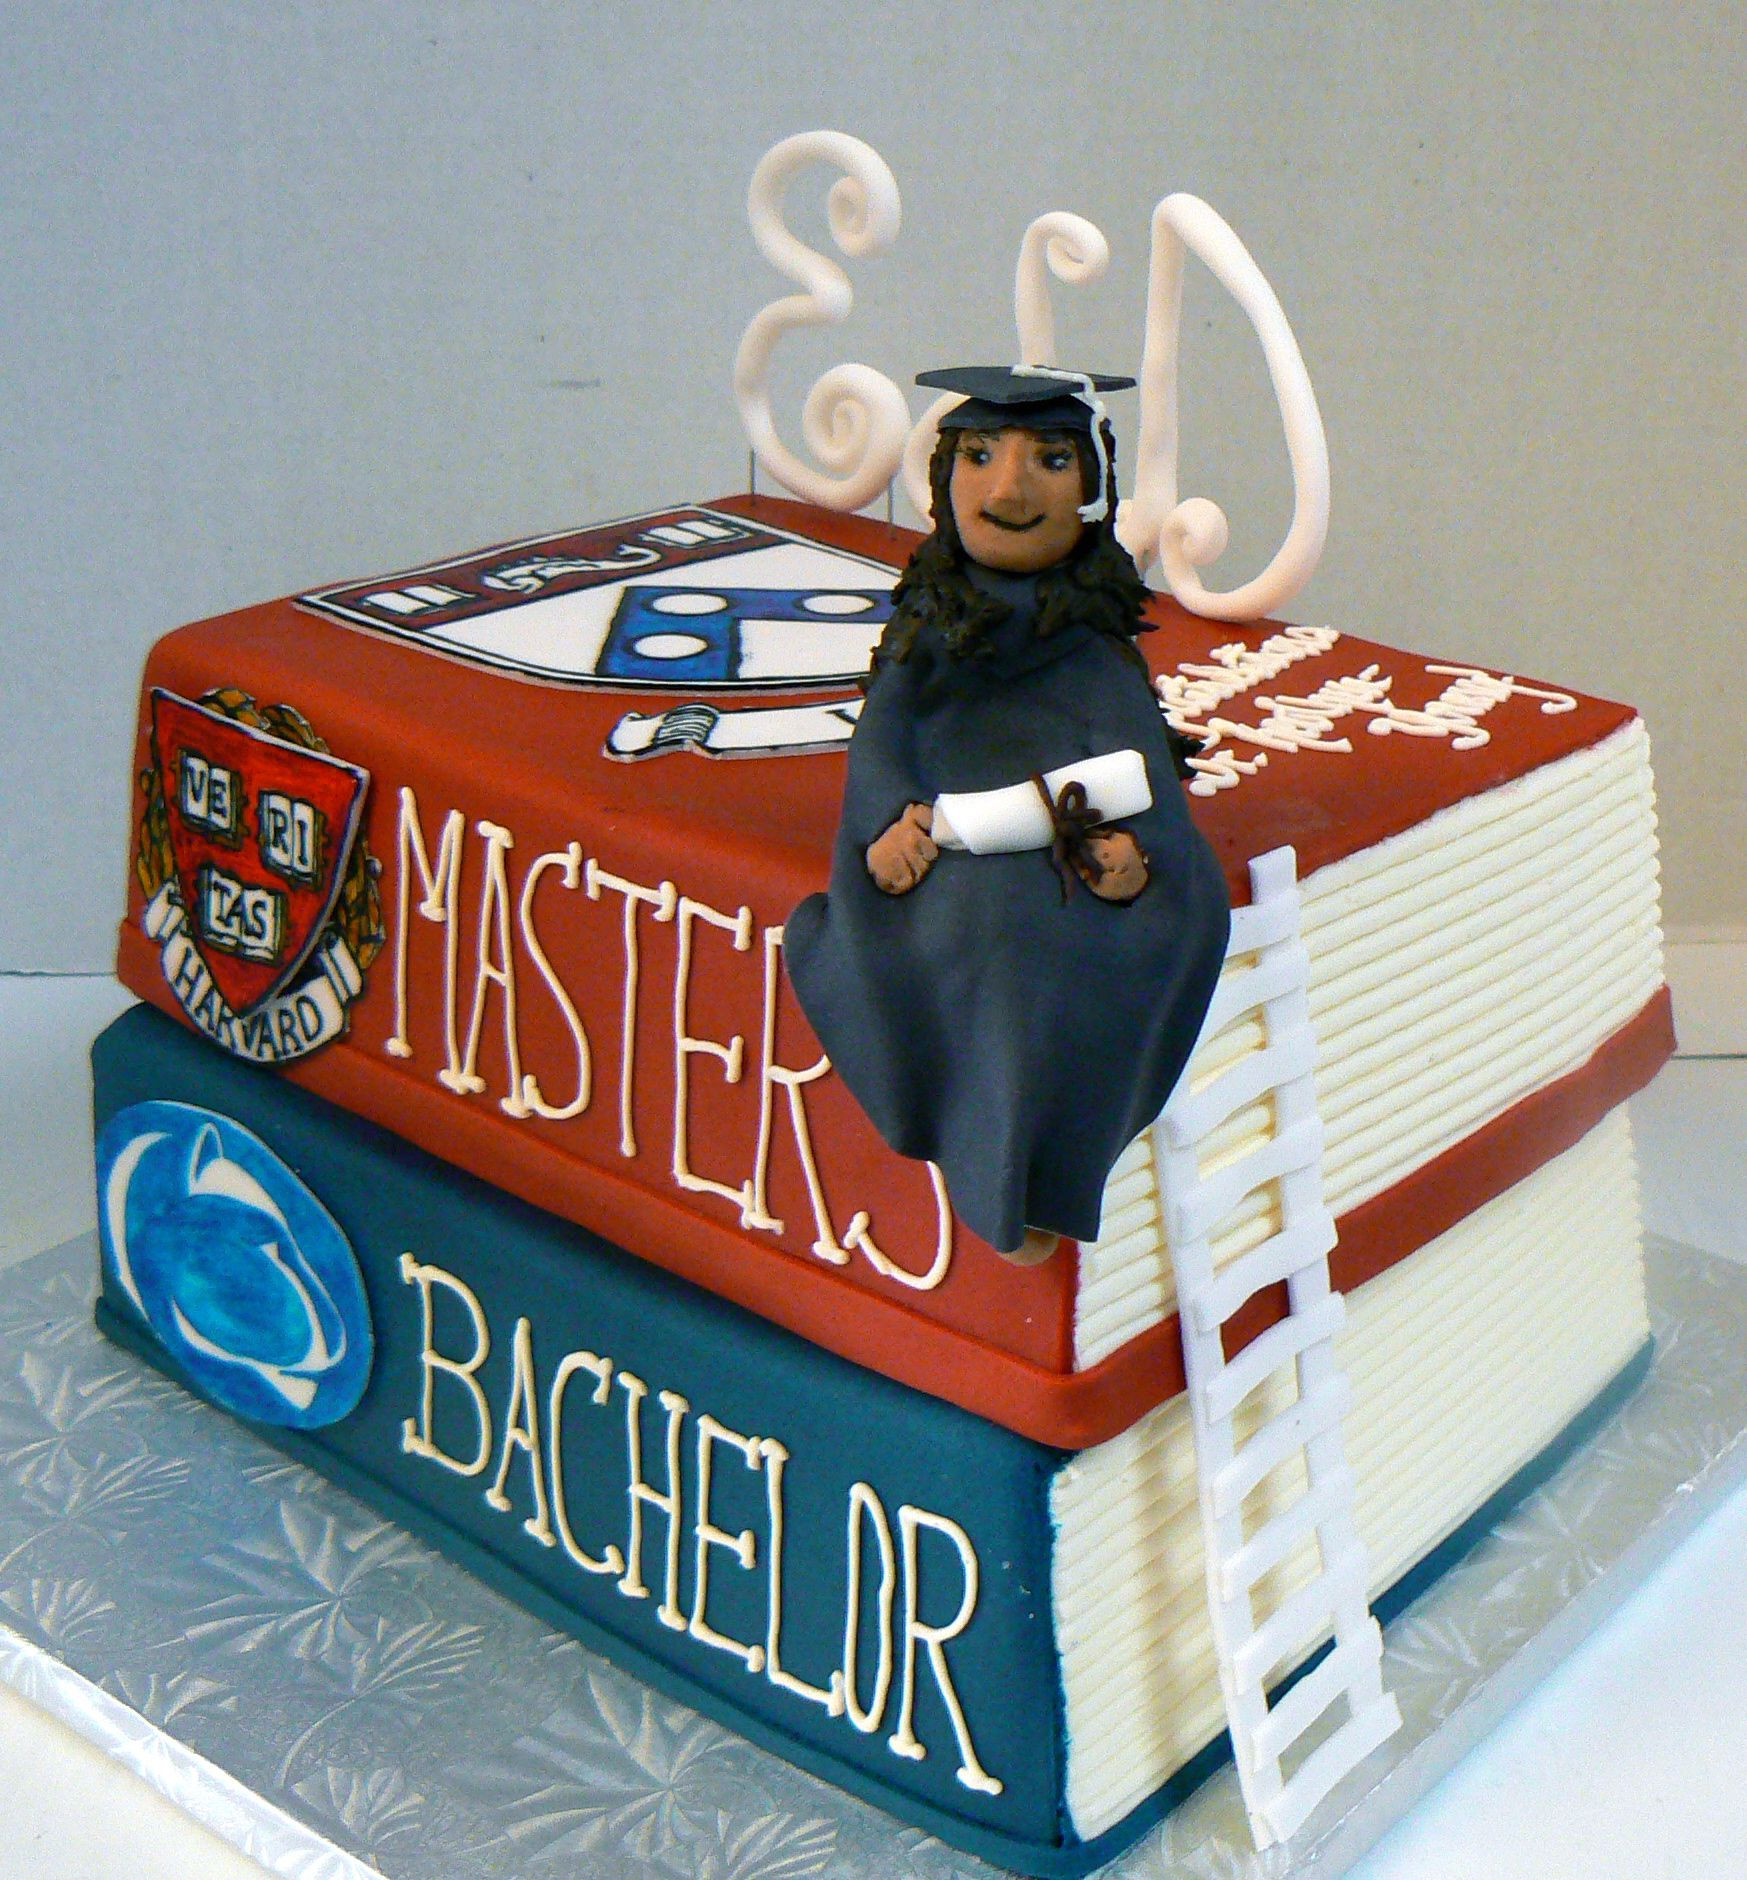 Doctoral Graduation Party Ideas  Doctorate Masters Bachelors Graduation Cake